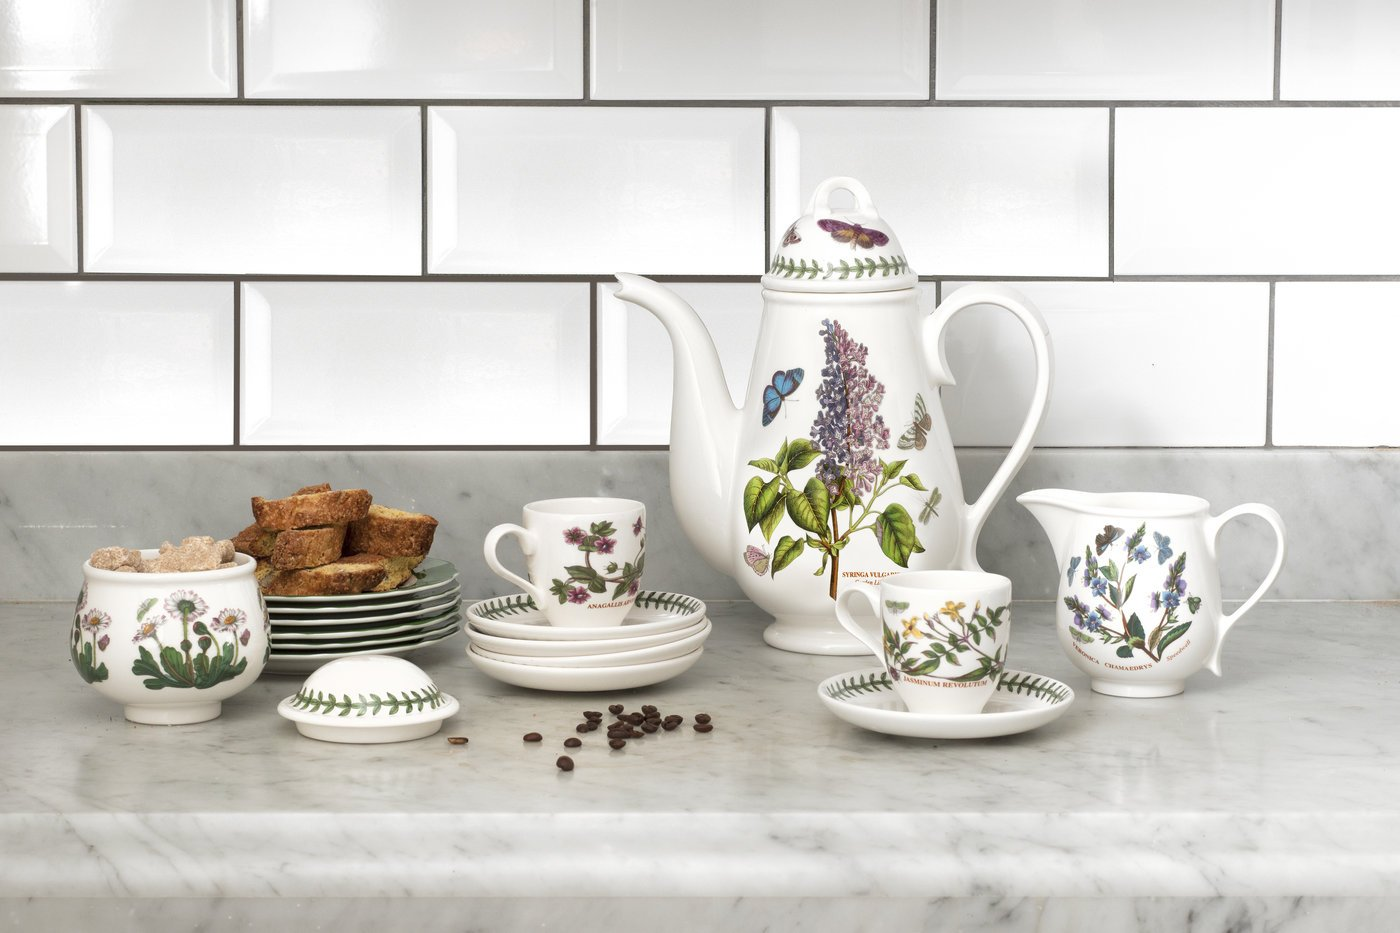 Portmeirion Botanic GardenTradtional Shape Breakfast Cup and Saucer, Set of 6 Assorted Motifs